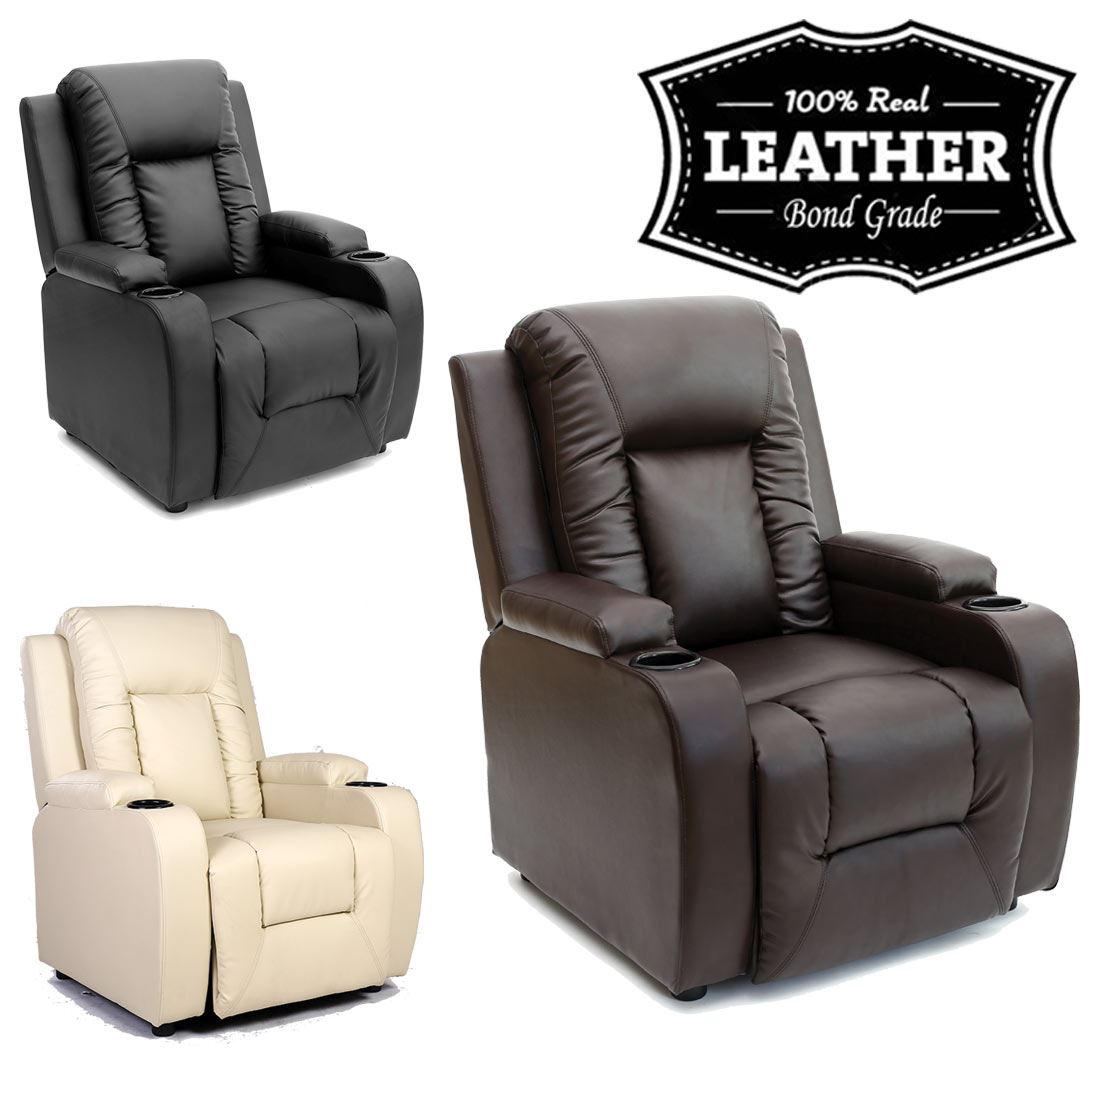 maverick reviews z recliner furniture wayfair leather la boy pdx